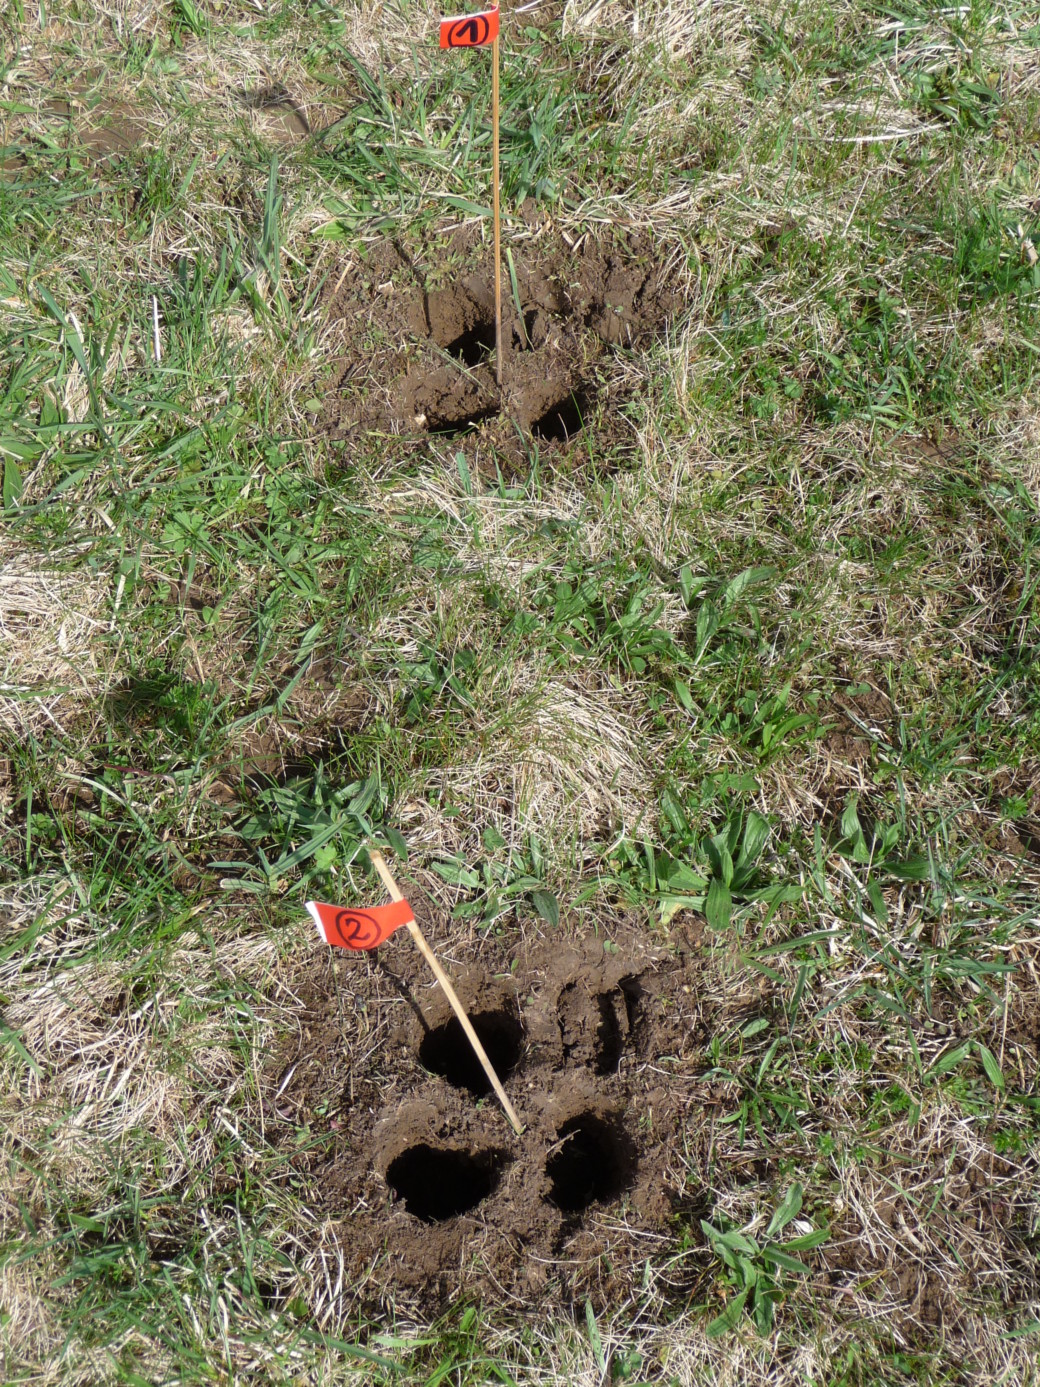 Photo shows site of soil sampling: four cylindrical holes in the soil arranged in a square